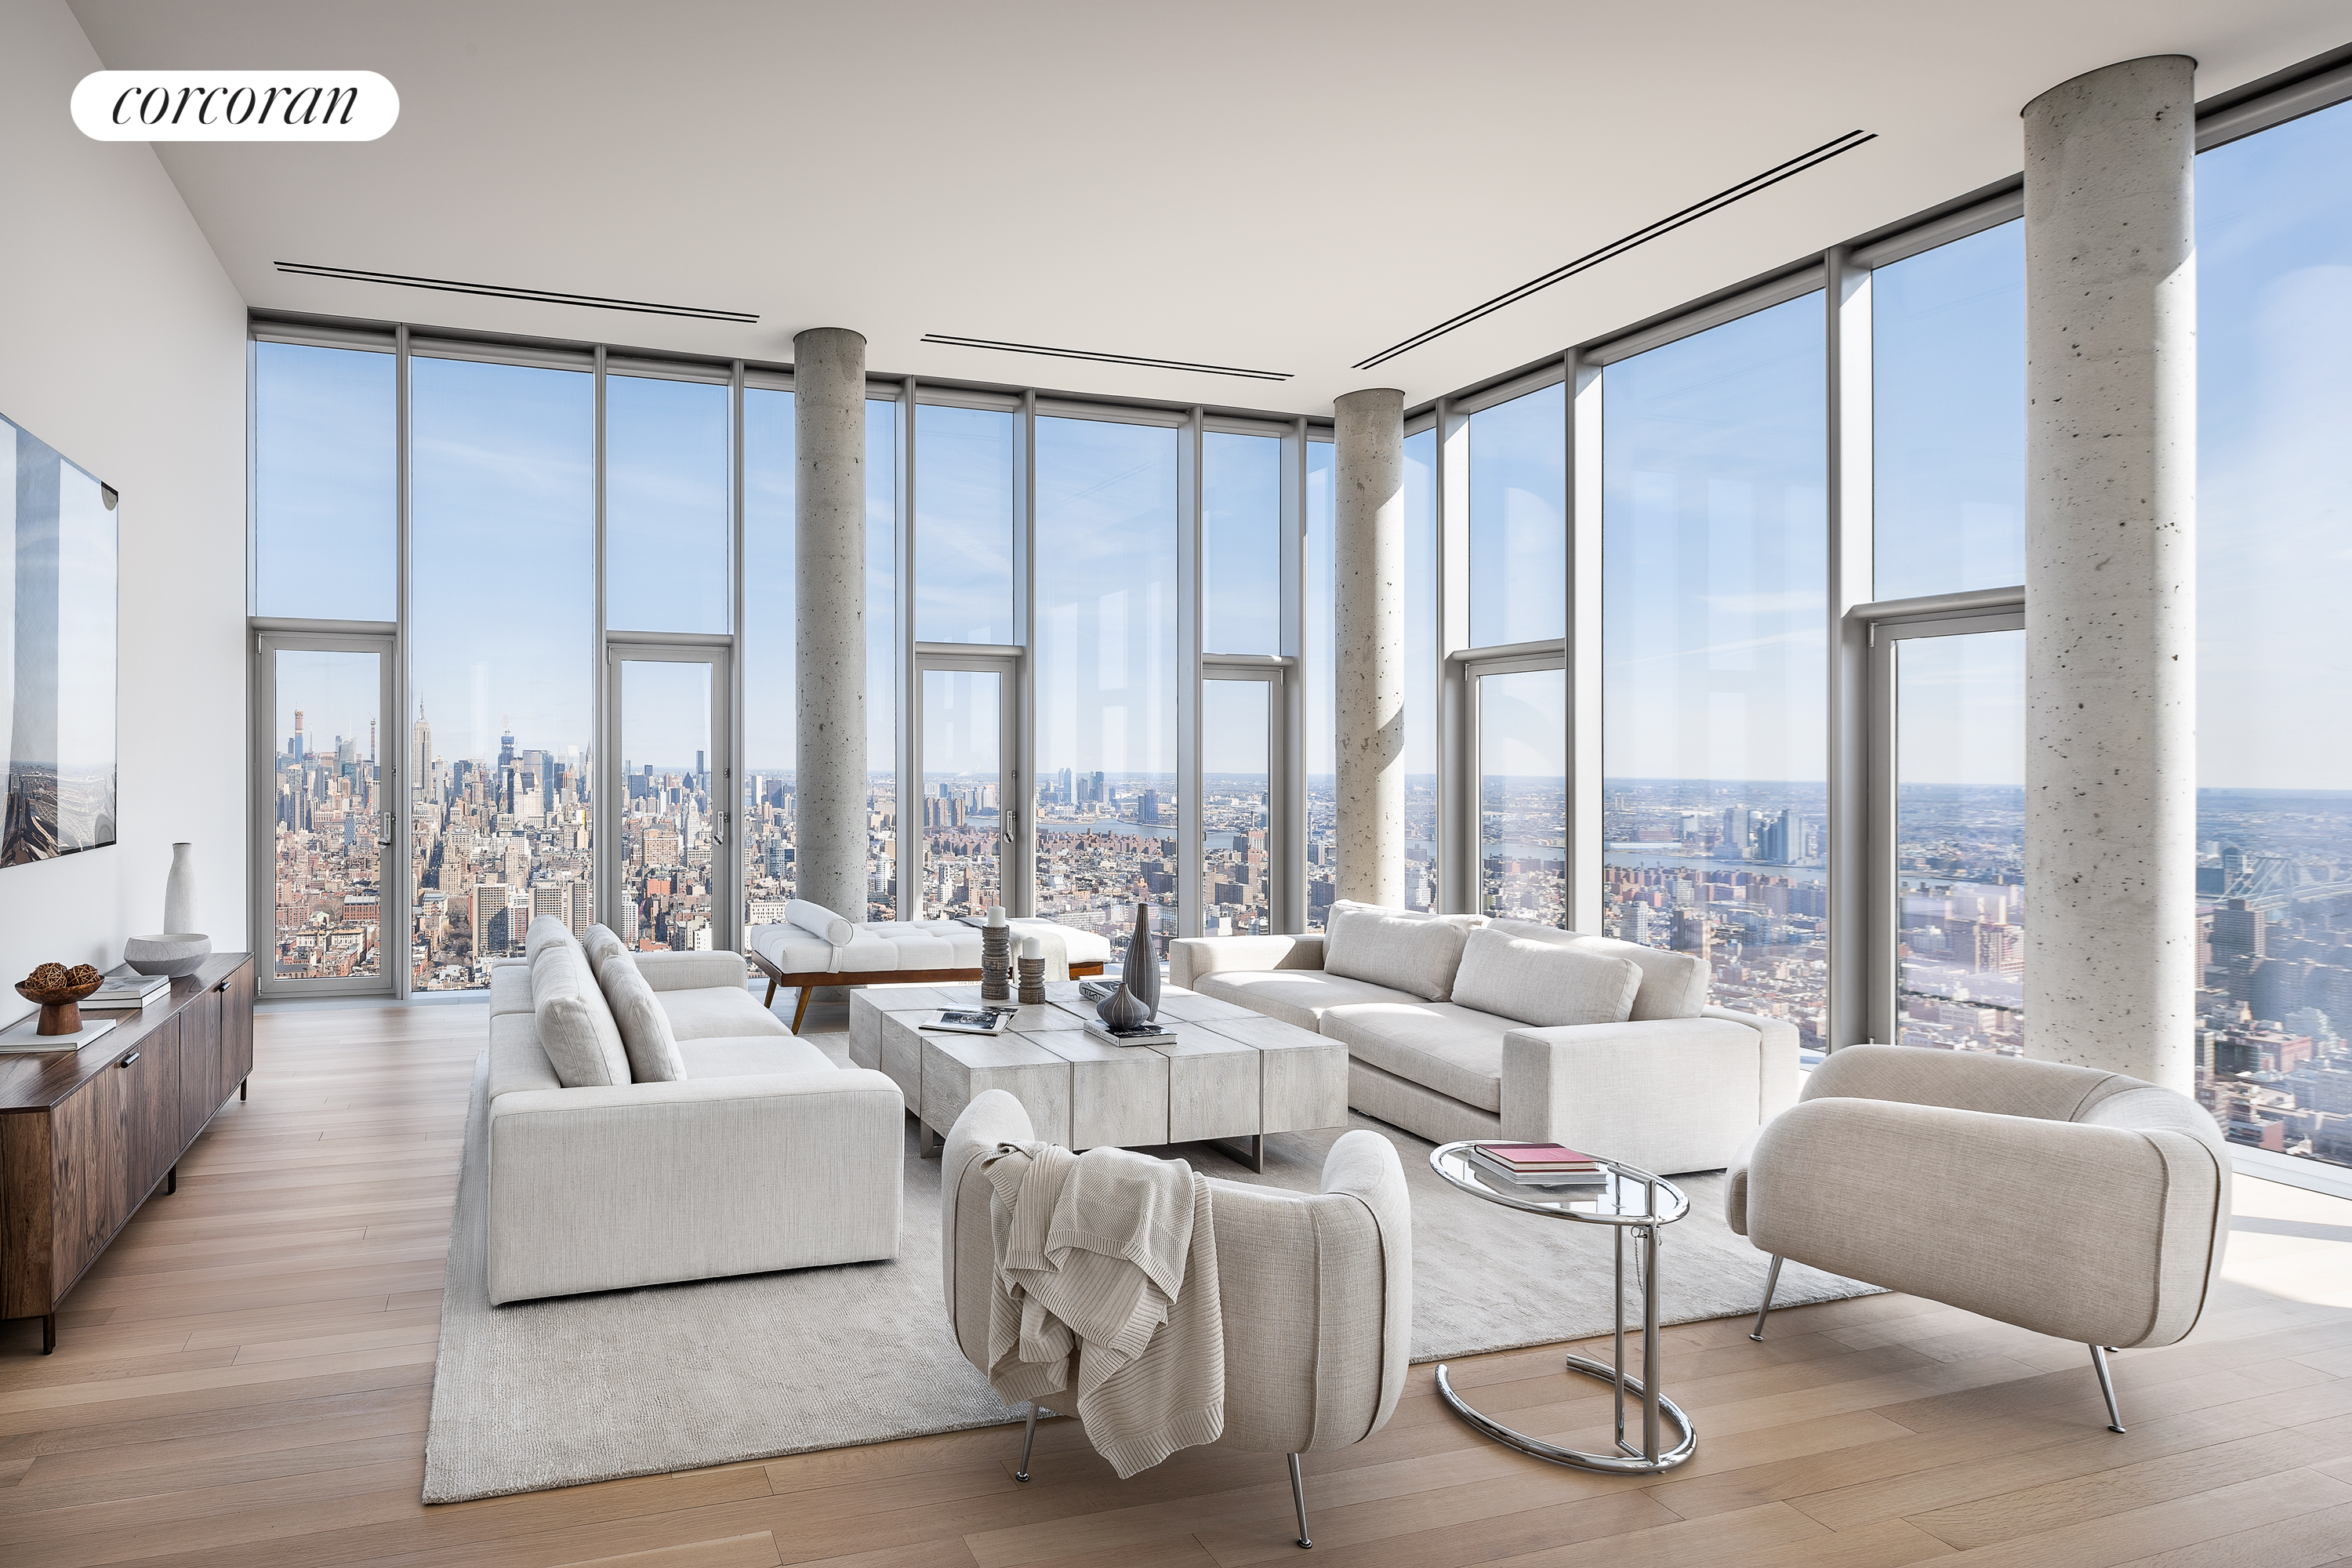 Penthouse 57 is a one-of-a-kind glass villa perched 700 ft in the iconic crown of Herzog & de Meurons 56 Leonard.  Glass window walls and 14 ft ceilings showcase 360 degree helicopter views from river to harbor, bridge to bridge, and to seemingly endless perspectives of the New York skyline. Bathed in light from every direction, this 5,252 square foot, 4-bedroom, 4.5-bathroom home is designed for indoor/outdoor living with 1,763 feet of exterior space.Direct elevator entry opens in to a formal gallery and onto the custom interiors designed by Pritzker Prize-winning architects Herzog & de Meuron. Vast entertaining spaces flow naturally from formal great room to library, den, dining room, and kitchen. A custom designed free-standing wood-burning fireplace with Venetian plaster creates a dramatic focal point.  From a magnificent single centerpoint in the gallery, there are direct sightlines spanning all four directions. The set-back open kitchen features a sculptural Absolute Black granite grand piano shaped island with a custom-sculpted floating hood. The chefs kitchen boasts integrated appliances including double Sub-Zero refrigerators, Miele double ovens, six-burner cook top with fully-vented hood, two dishwashers and Sub-Zero wine cooler. Satin-etched glass Molteni cabinets provide abundant storage and subtly take on the changing tones of the sky. The corner master bedroom suite with Hudson River facing balcony, large dressing room, and an oversized, windowed five-fixture master bathroom of travertine and Thassoss marble, with radiant heated floors, steam shower and dual shower heads and a freestanding soaking tub with a dramatic backdrop of the NYC skyline. Three additional corner bedroom suites with en-suite baths. The powder room has a striking vanity carved from a single block of Travertine into a smooth, softly curved basin; above is a custom mirror with lighting by Herzog & de Meuron. Appalachian solid White Oak flooring throughout, 4-pipe heating and cooling system for year-round multi-zone climate control, fully vented laundry room, cedar closet, and dedicated service entrance allow for effortless living.  56 Leonard boasts 17,000 square feet of amenities including a 75 lap pool with a sundeck, steam room, redwood sauna, hot tub, gym, screening room, lounge, private dining room and playroom. 56 Leonard is a beloved global landmark that has left an indelible mark on the New York skyline. In late spring 2019, Artist Anish Kapoor will install his first permanent work in New York at the base of 56 Leonard, solidifying this unprecedented collaboration between artist and architect. 56 Leonard offers on-site parking and storage for purchase. Penthouse 57 is a Sponsor residence with no board approval. 421A Tax Abatement.Exclusive Marketing & Sales Agent: Corcoran Sunshine Marketing Group